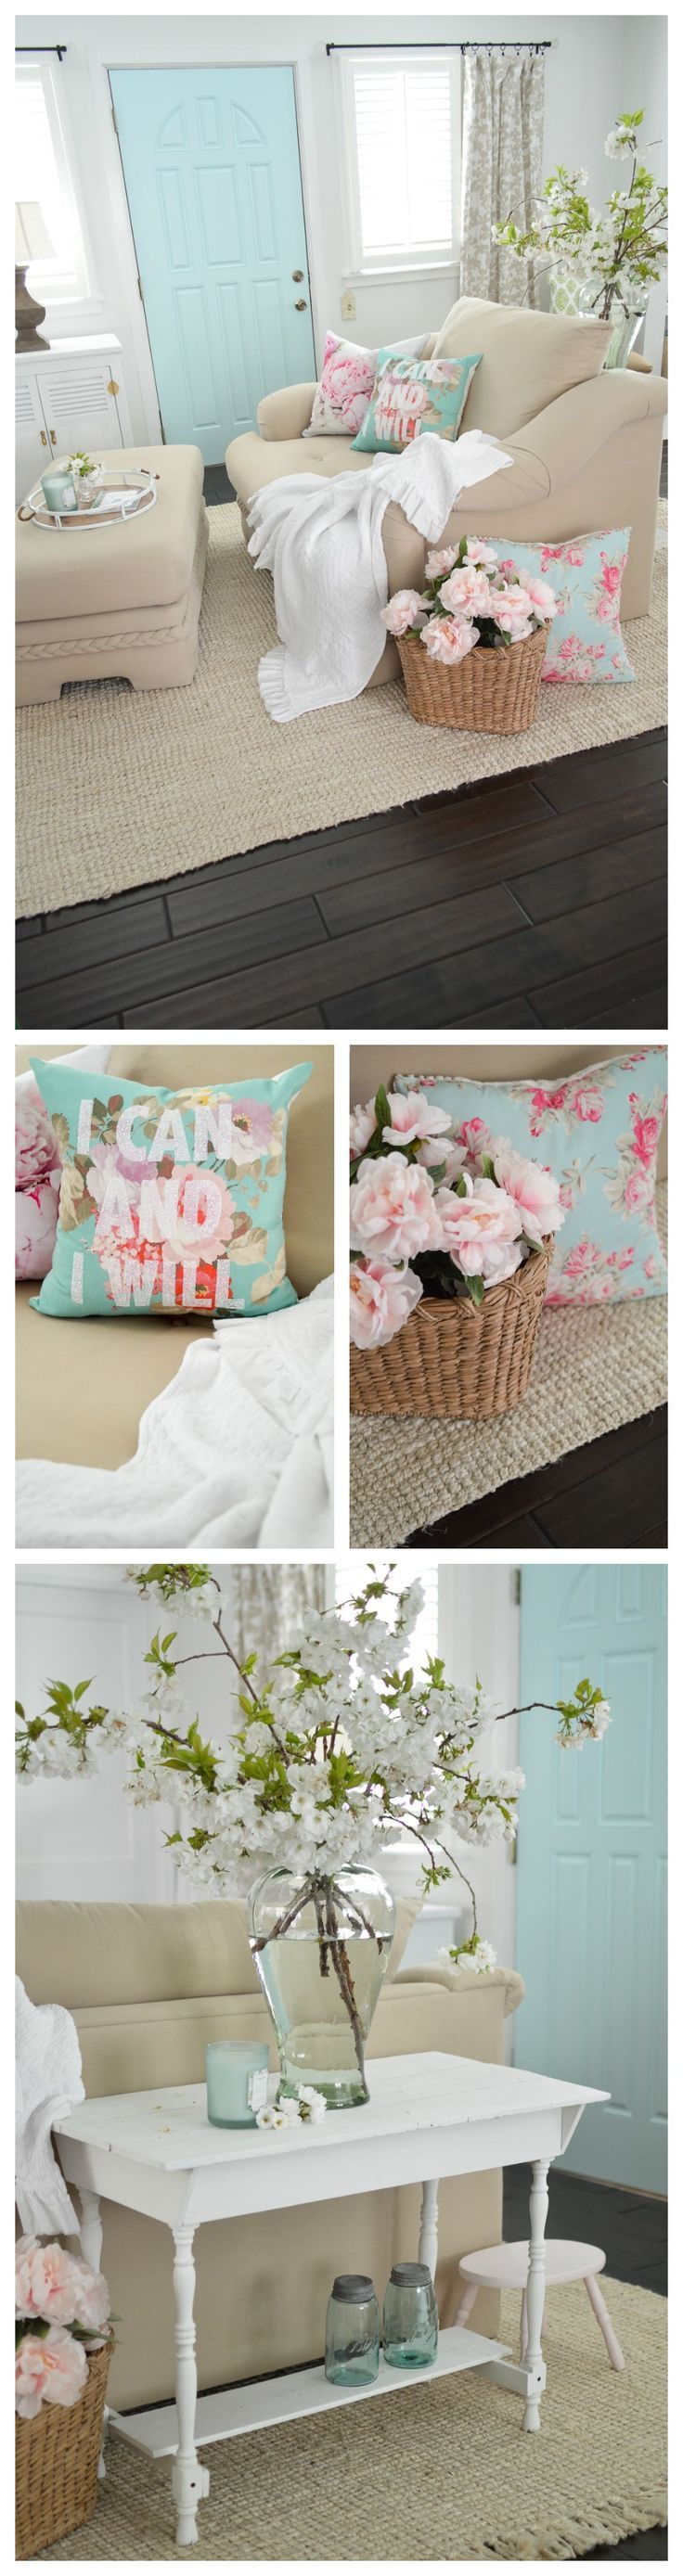 I love sharing my eclectic cottage-farmhouse decorating ideas with you, like this fun aqua painted interior door. Such a fast, fun way to add some whimsical style to your home, without doing anything too drastic or permanent! Did you know you can a paint a door in about 30 minutes? I change mine often and enjoy the different vibes the color changes offer for so little money. I'll show you how at ww.foxhollowcotta... xo Shannon